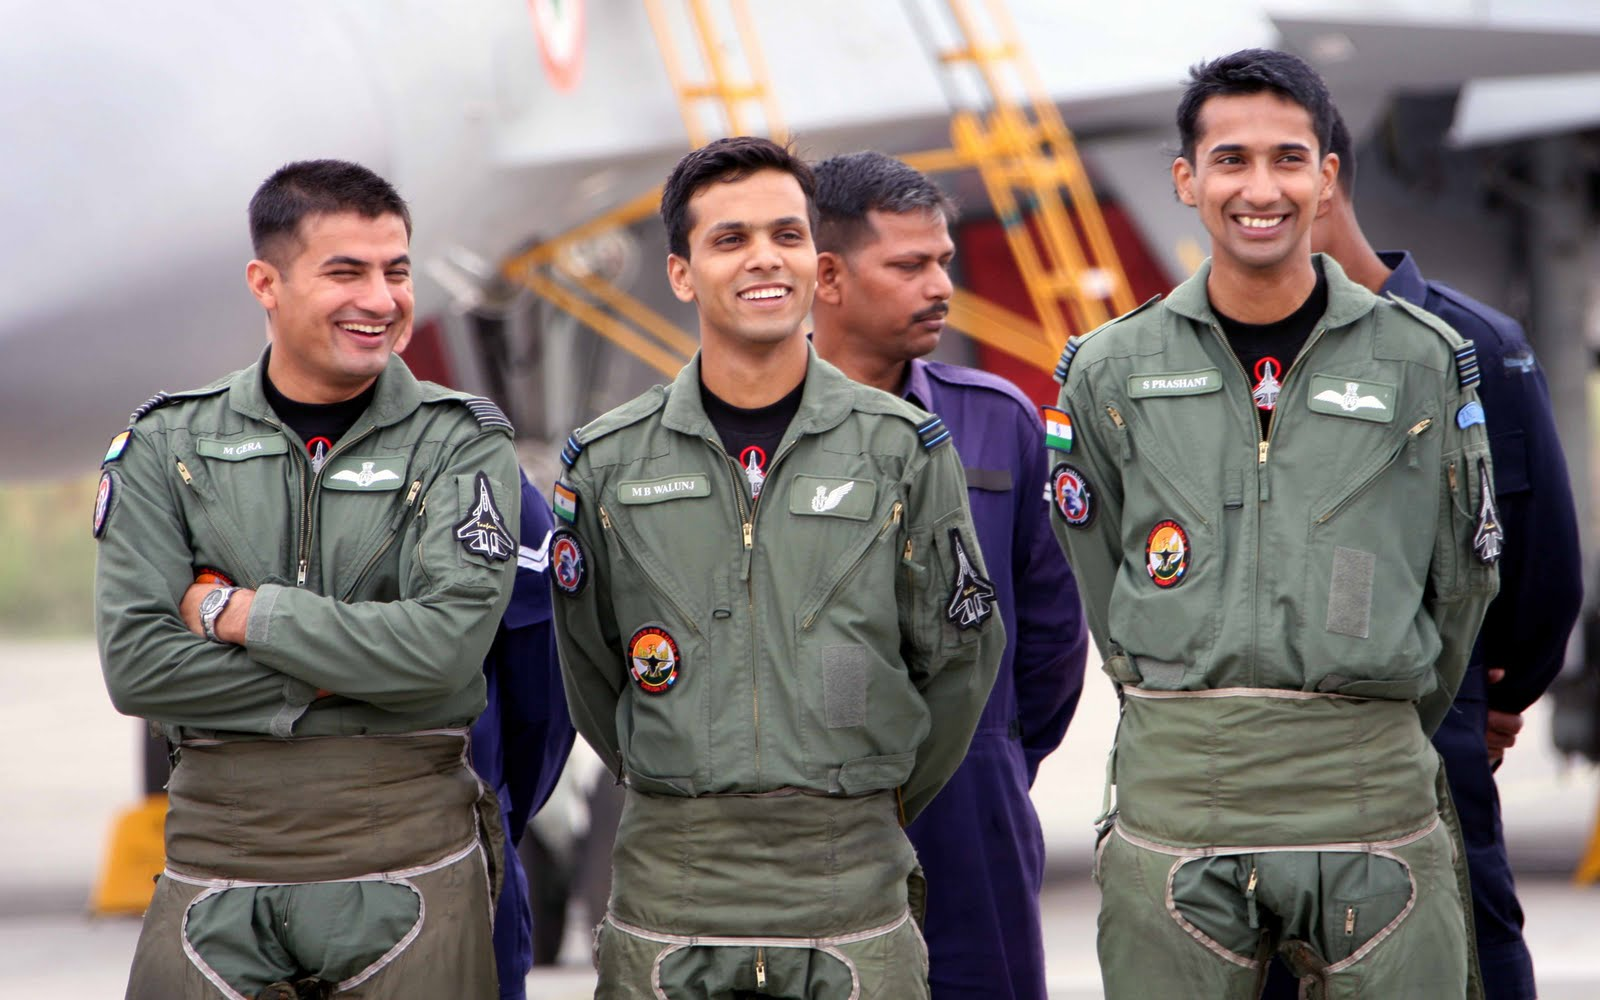 Army, Navy or the Air ... Indian Army Officer Dress Code